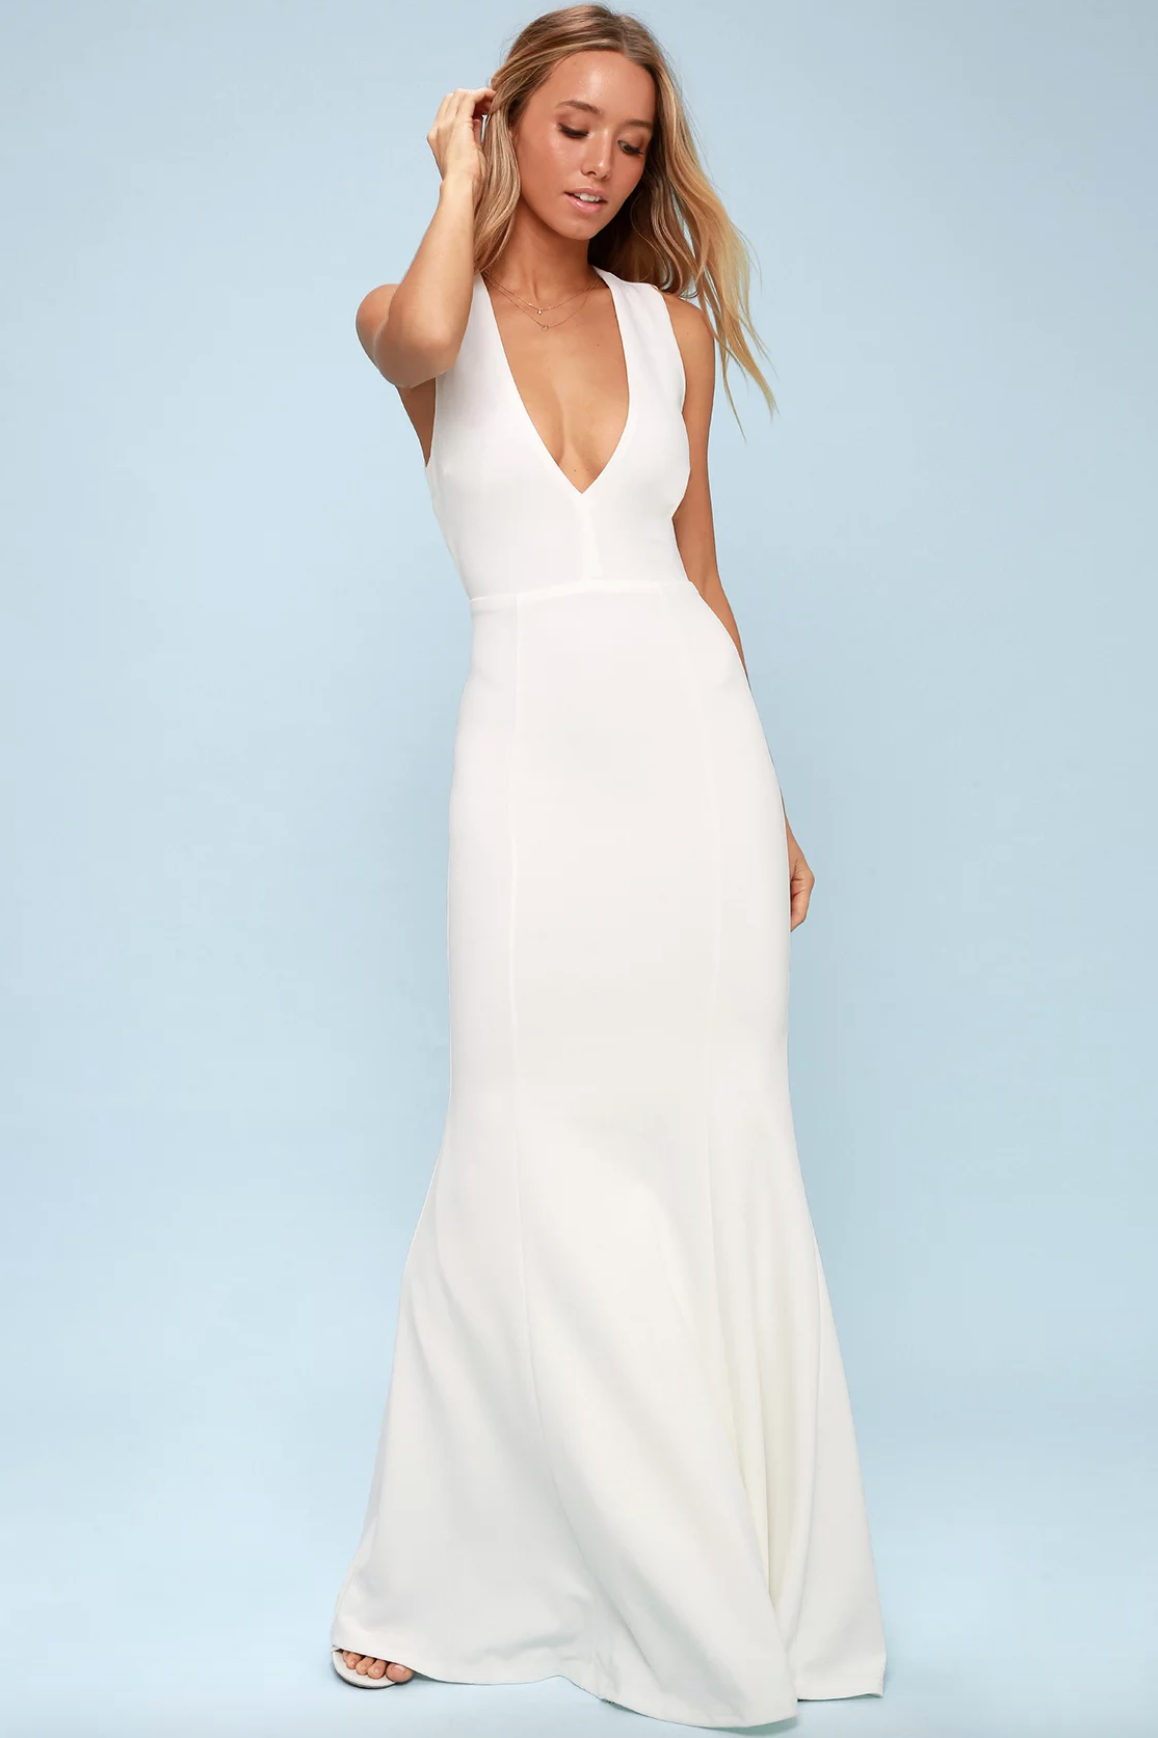 Simple, affordable, white, long sexy wedding dress | www.thoughtfully-thrifted.com